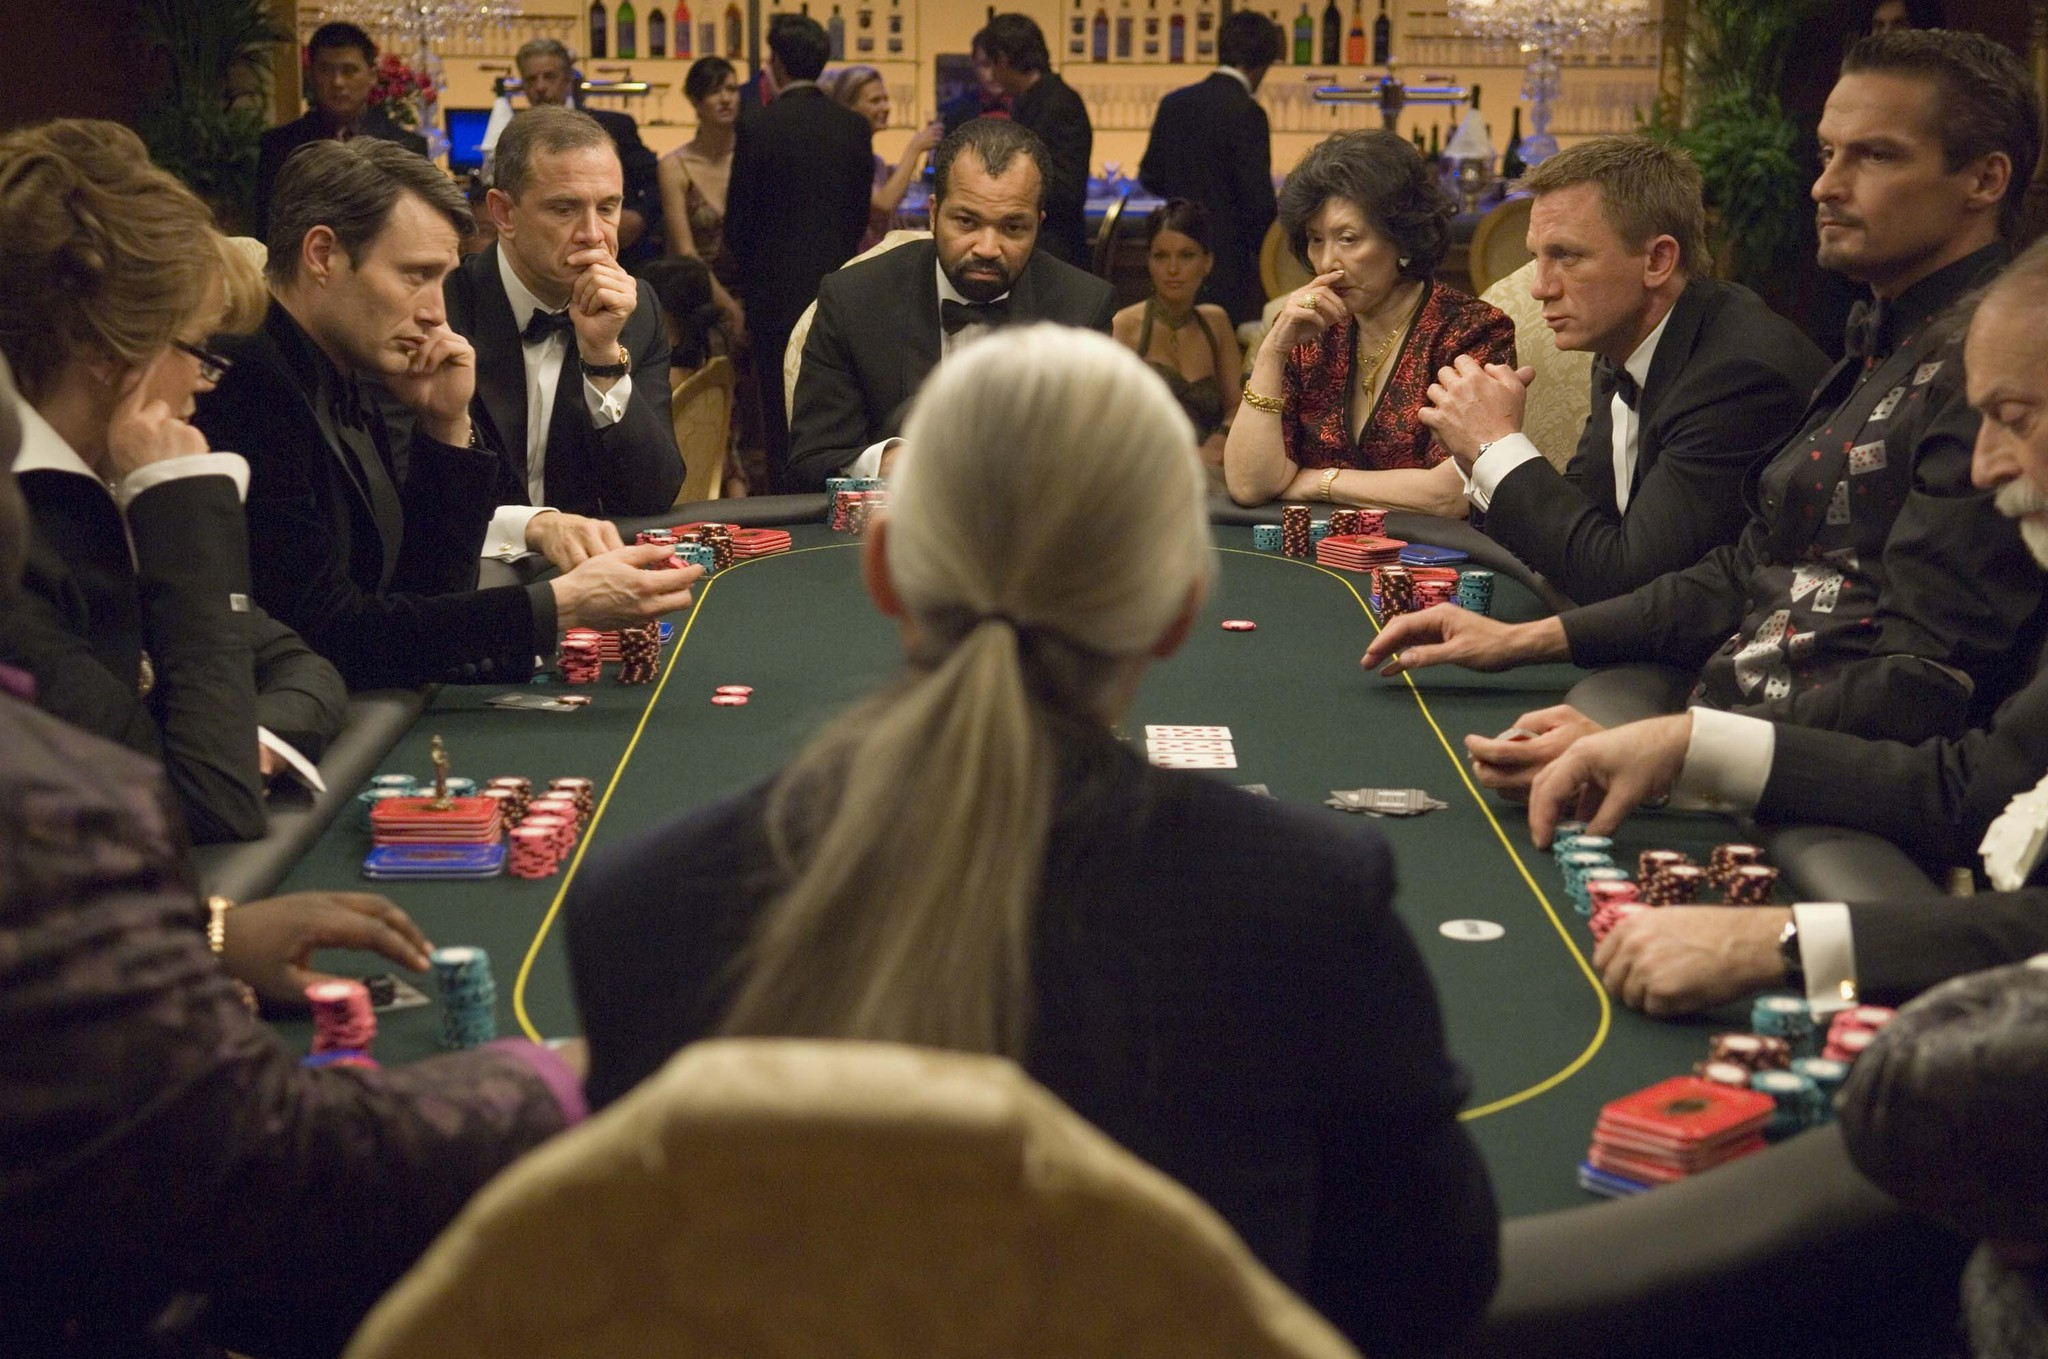 Casino royale - poker scene 2 listen to the crap